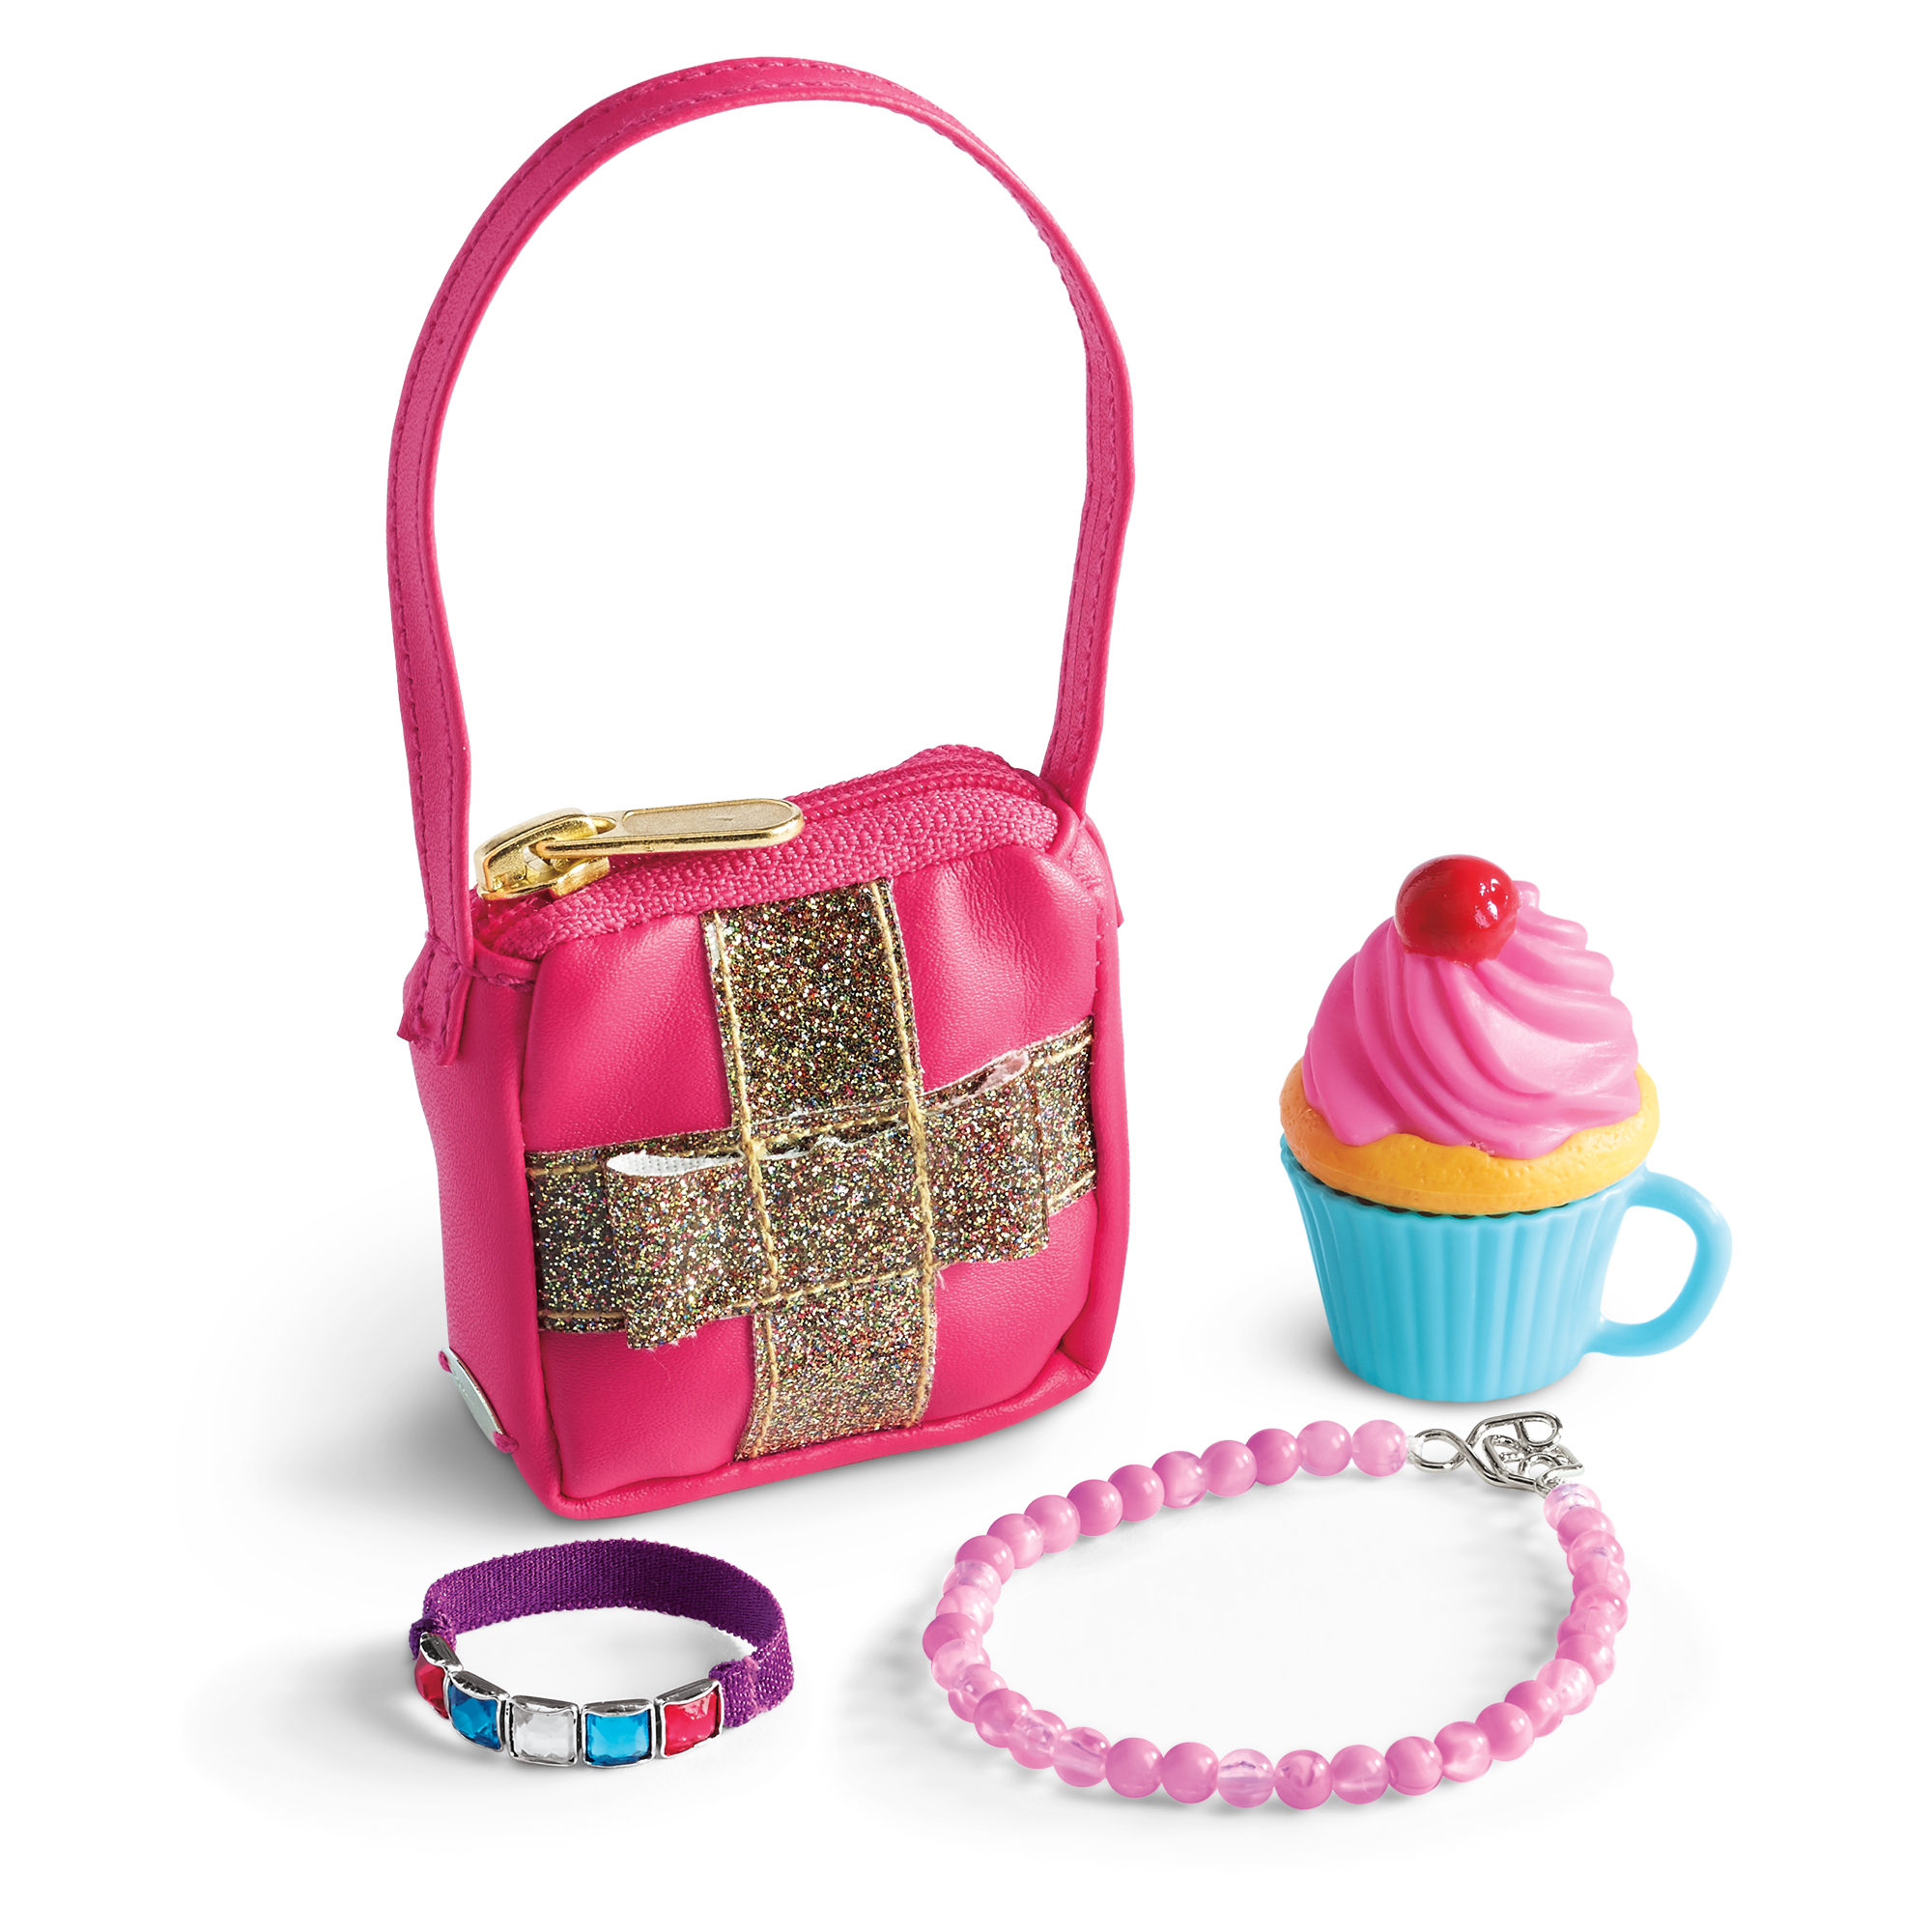 Trail Accessories   American Girl Wiki   FANDOM powered by